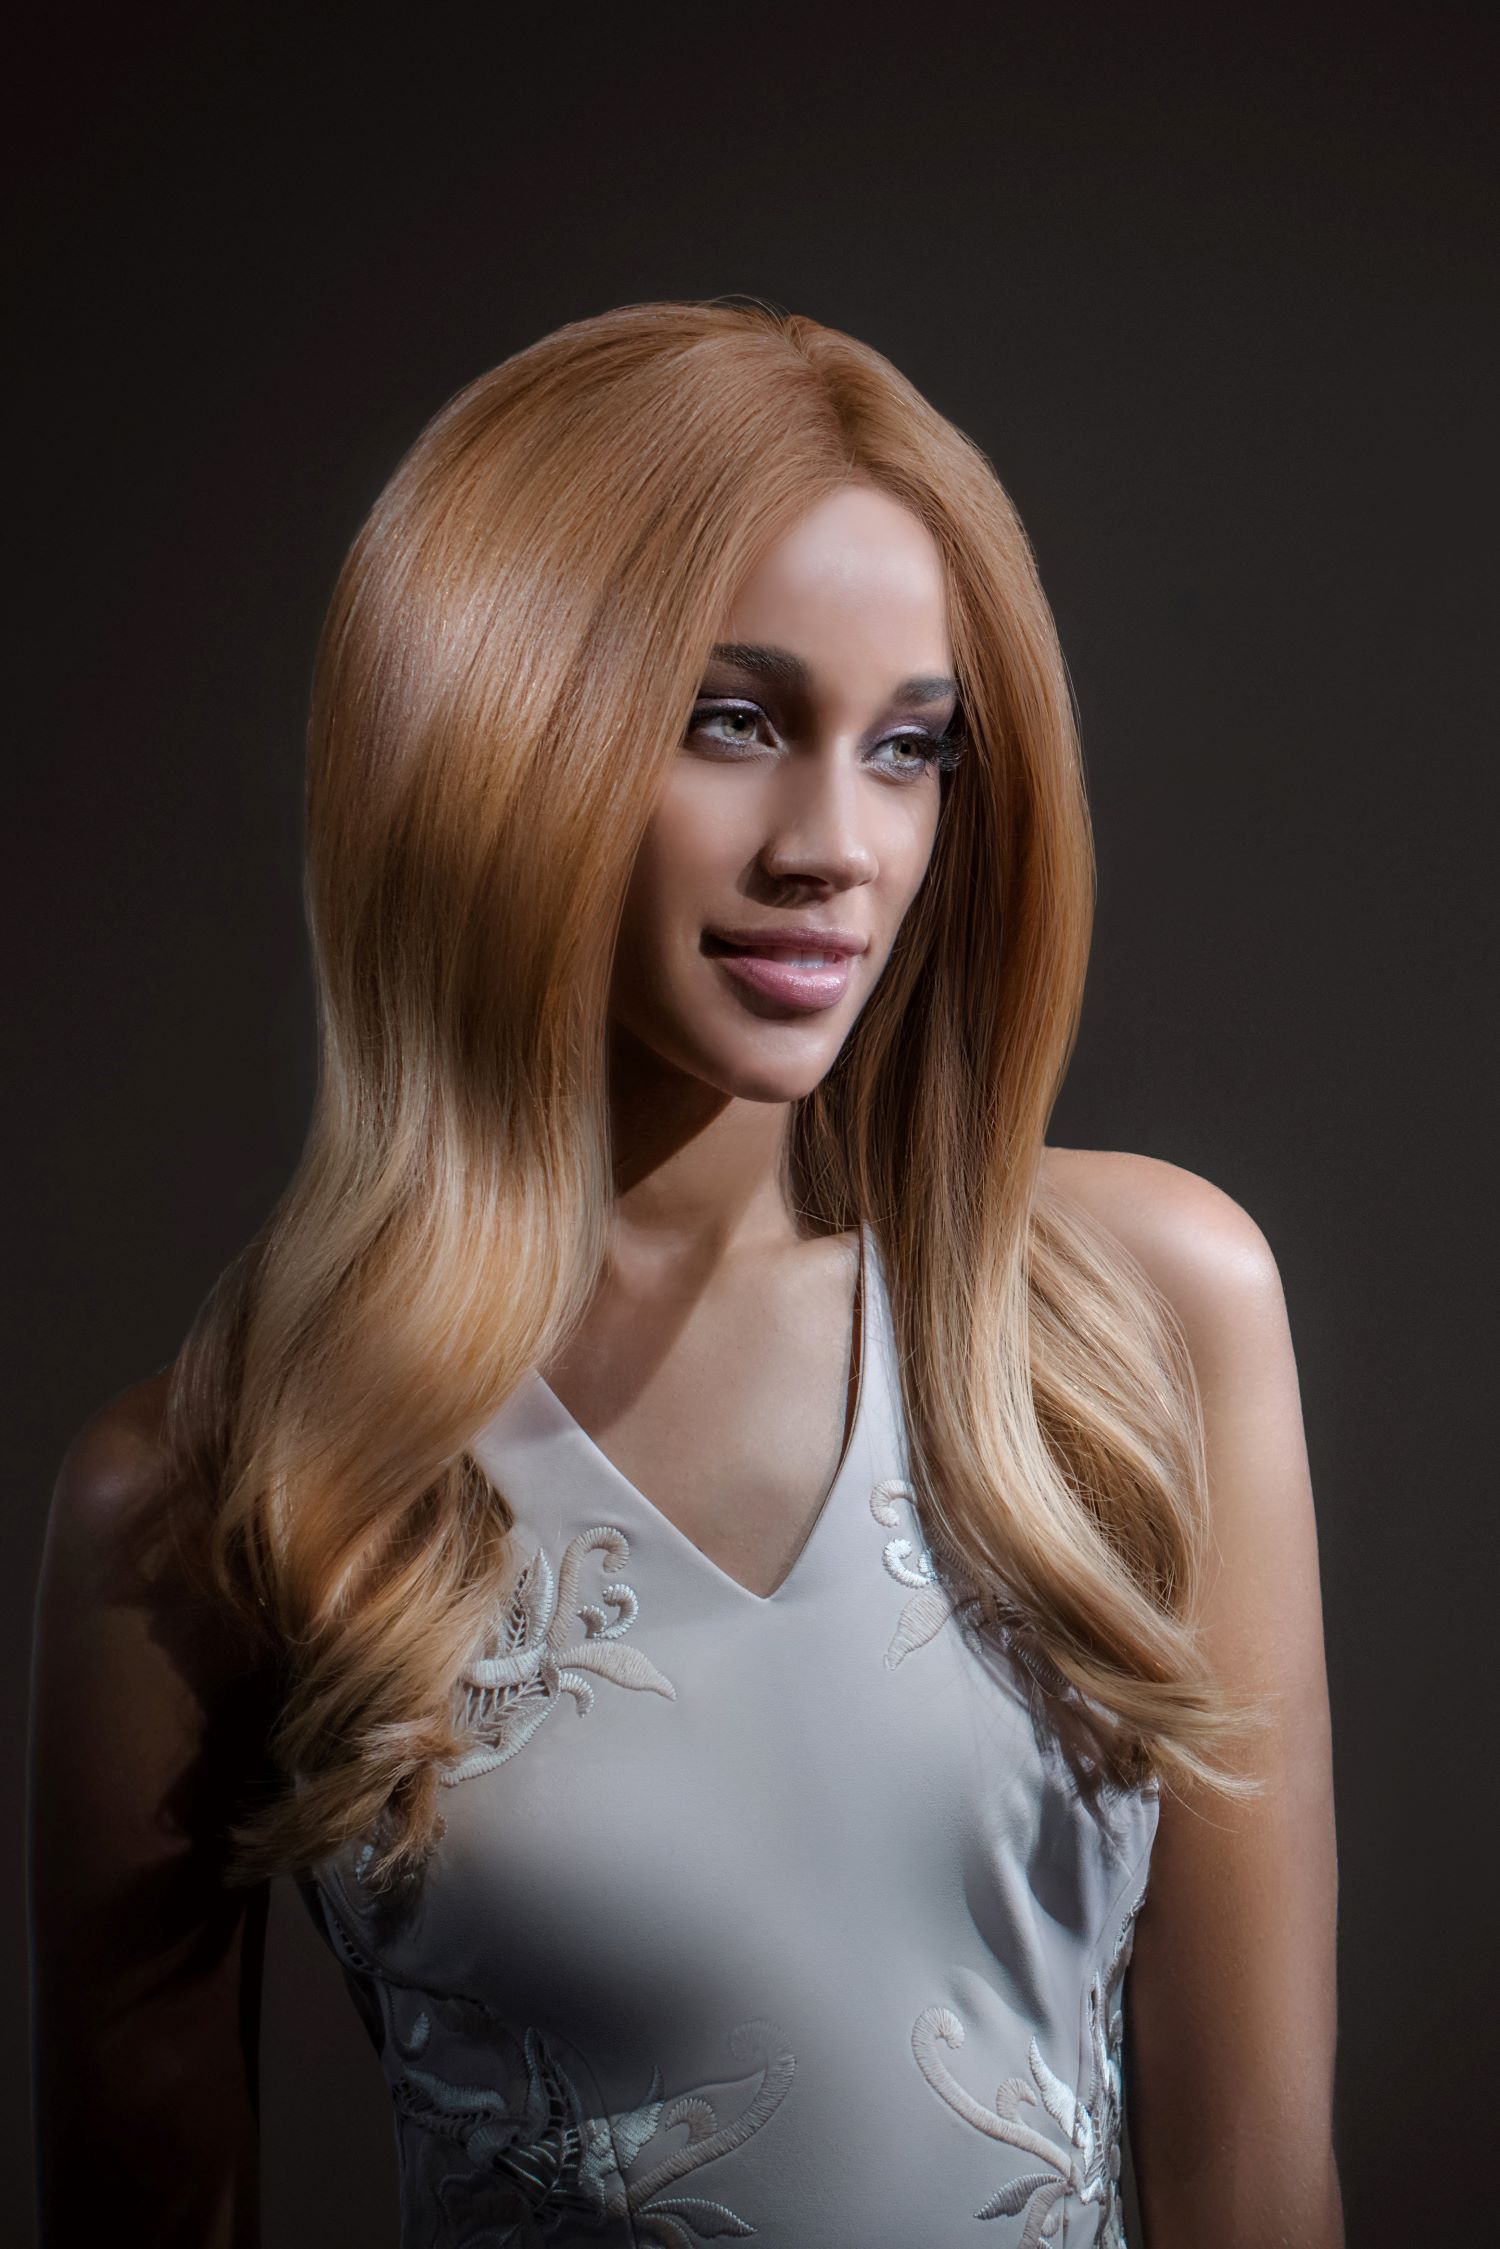 Amber Luxury Full Lace Blonde Ombre Wig- 360 Frontal Lace 9